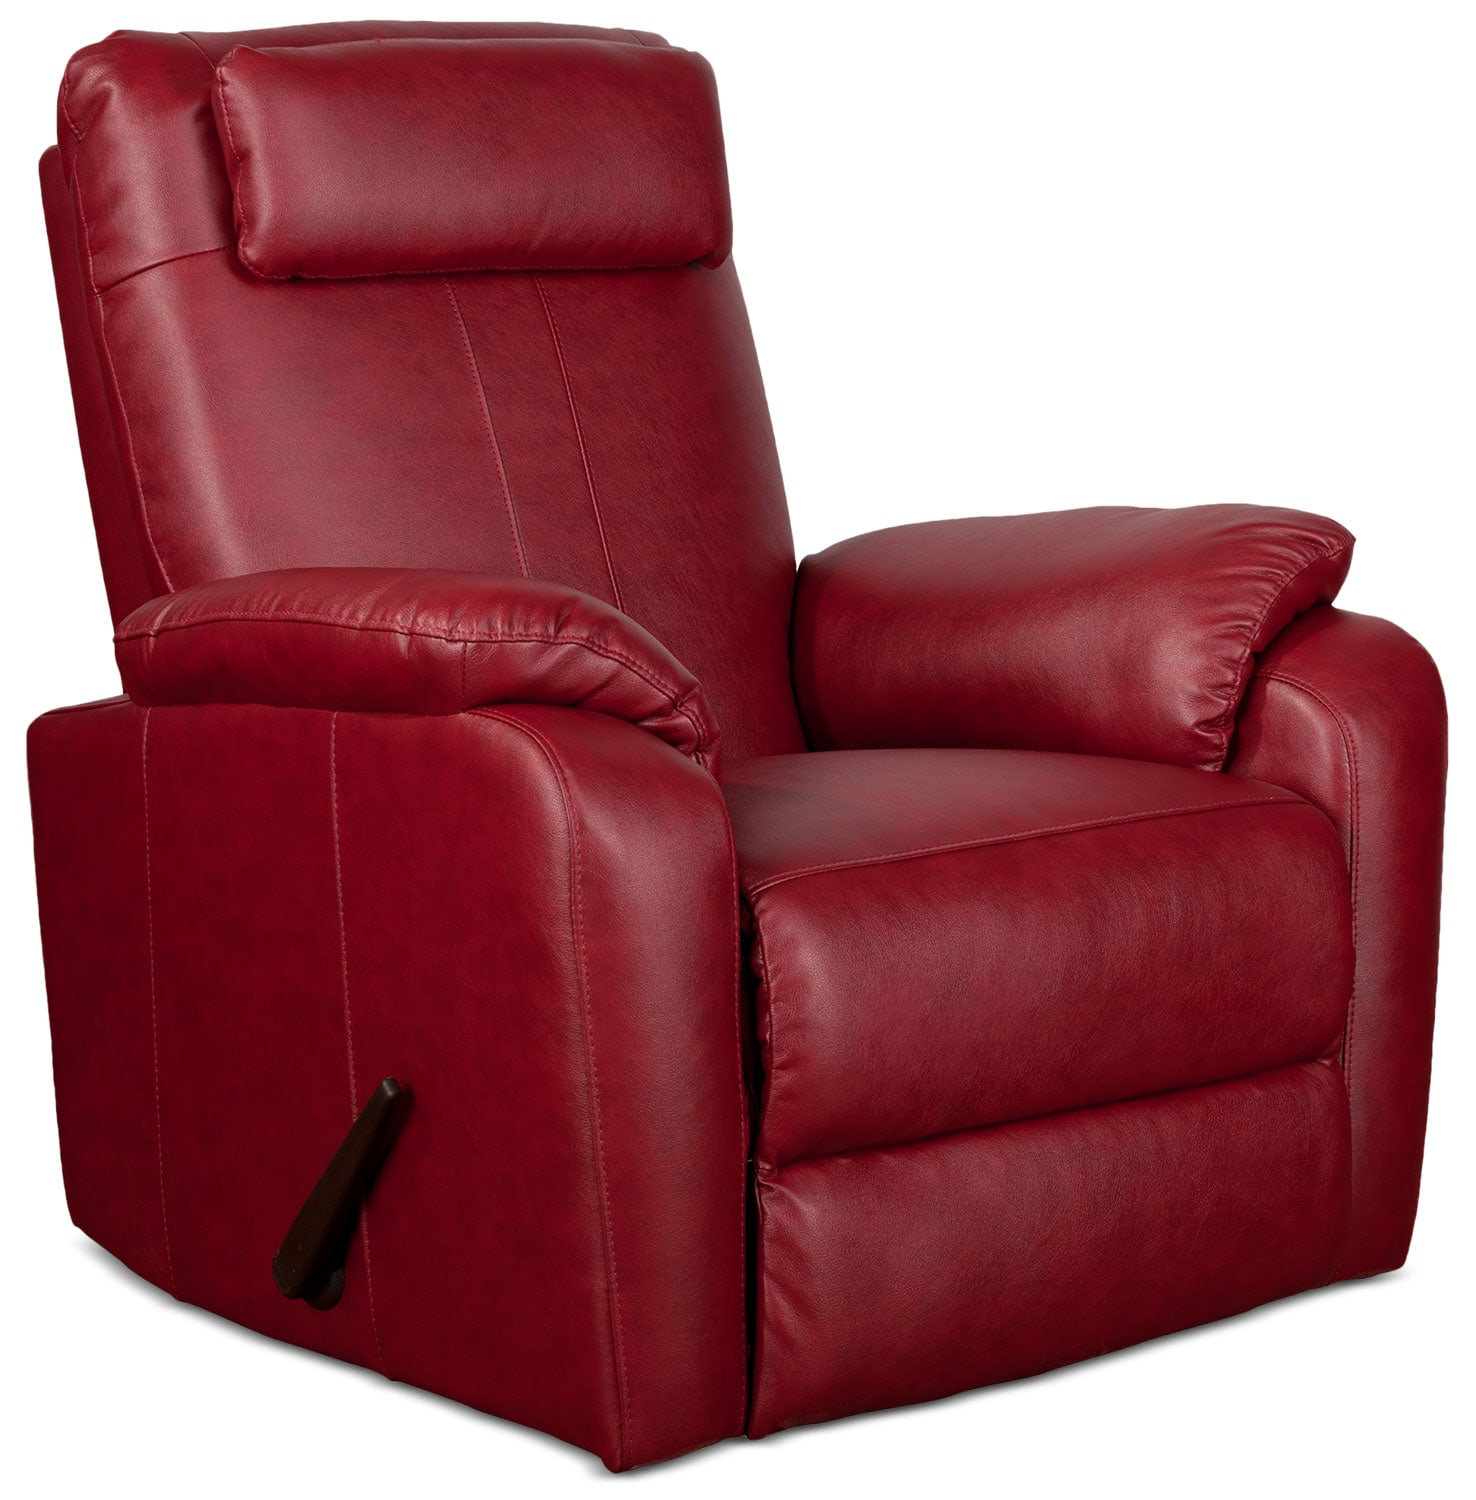 Sparta Rocker Recliner - Red